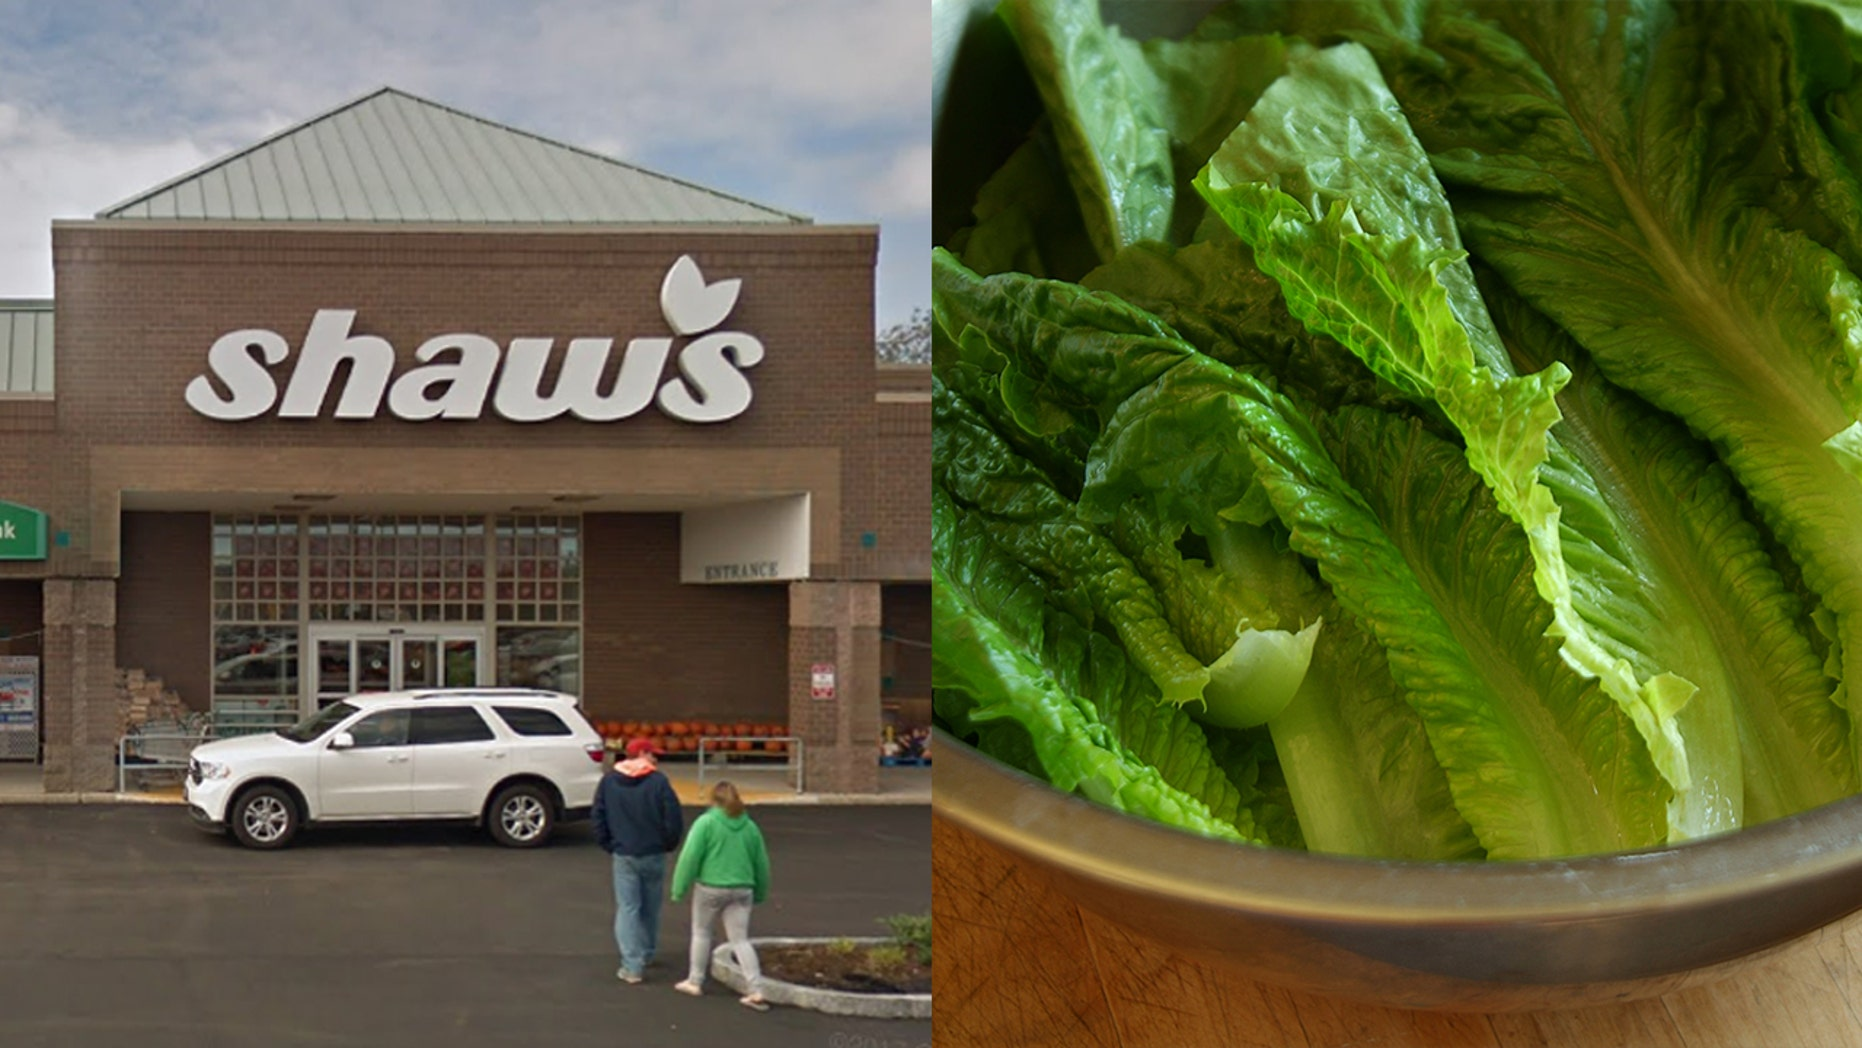 A Maine woman claims she found a dead lizard in her salad made with romaine lettuce she bought at a Shaw's supermarket.